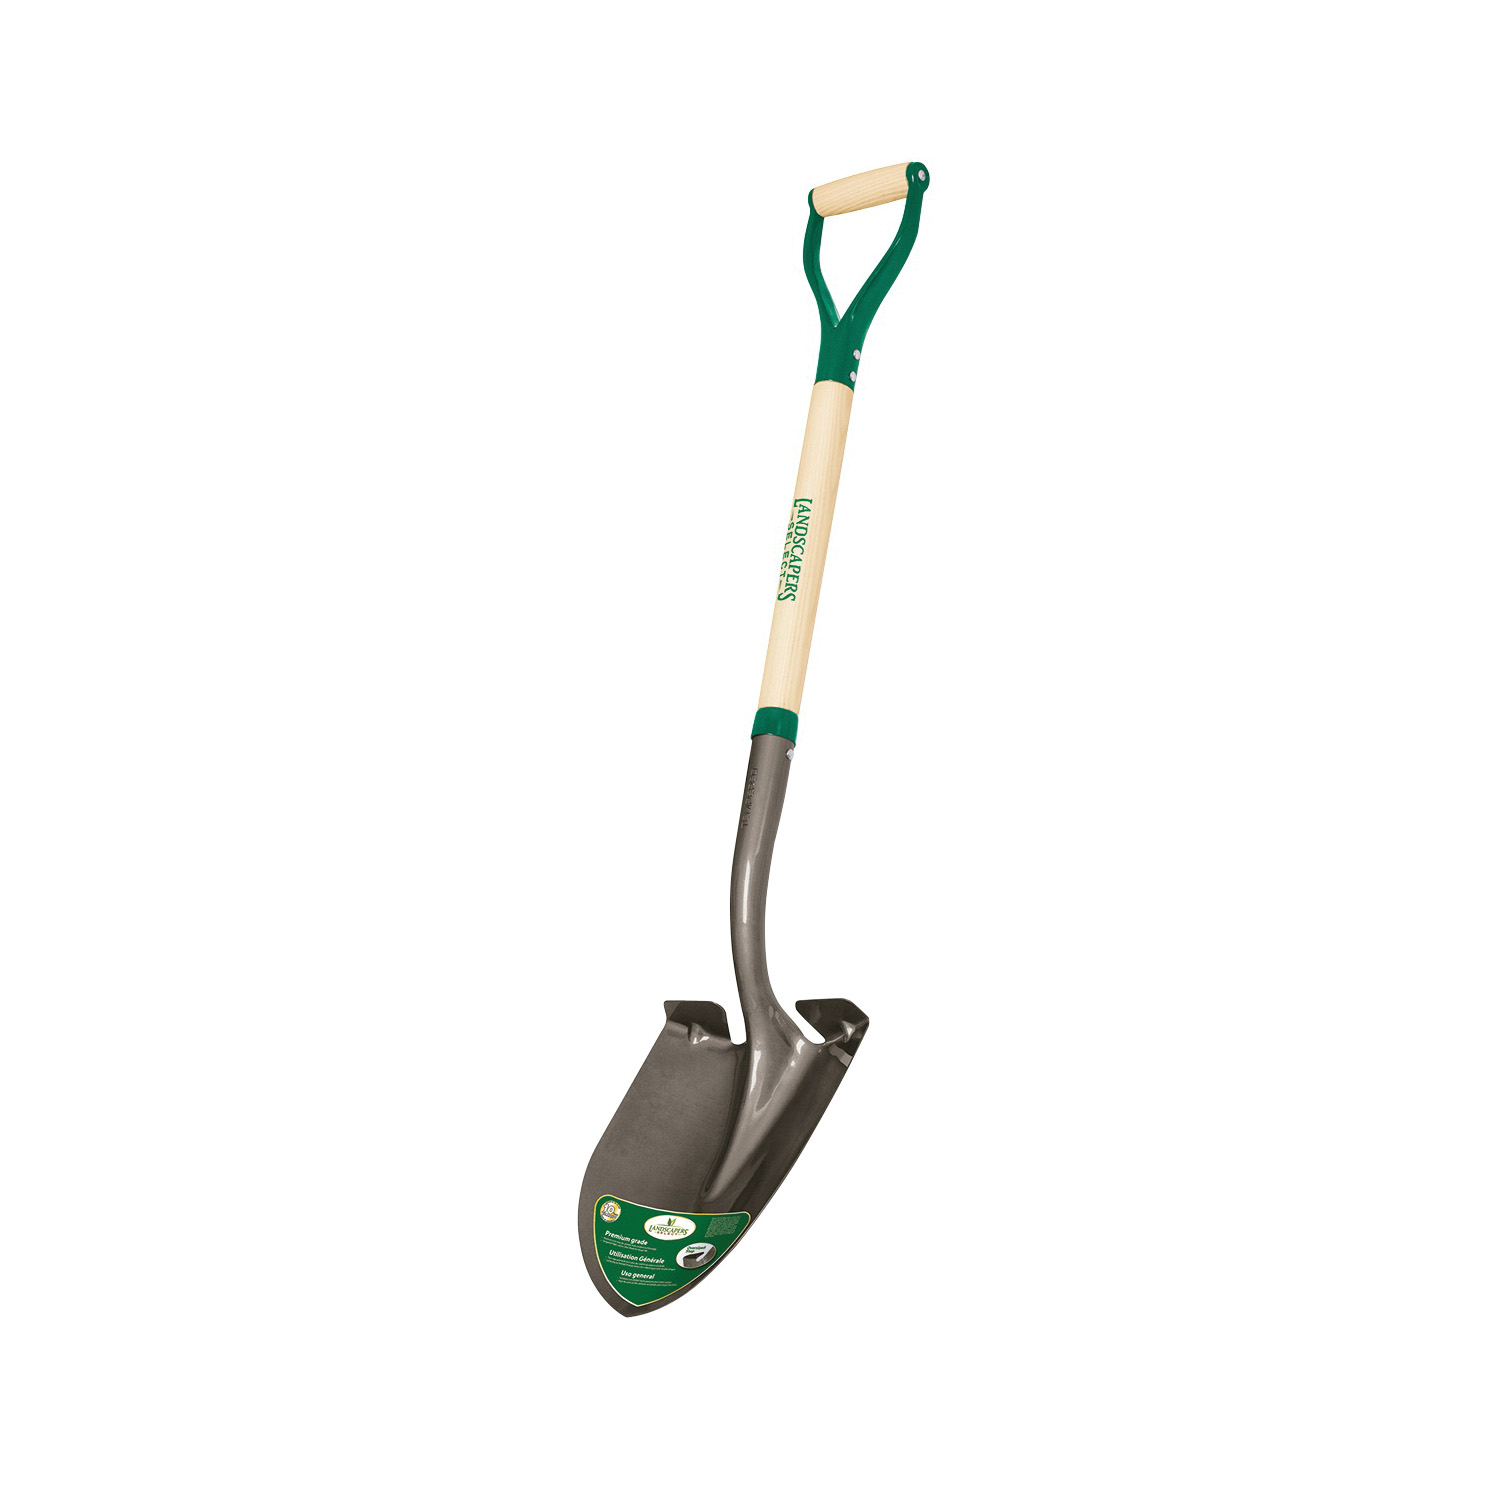 Picture of Landscapers Select 34593 Digging Shovel, Steel Blade, Steel Handle, D-Shaped Handle, 30 in L Handle